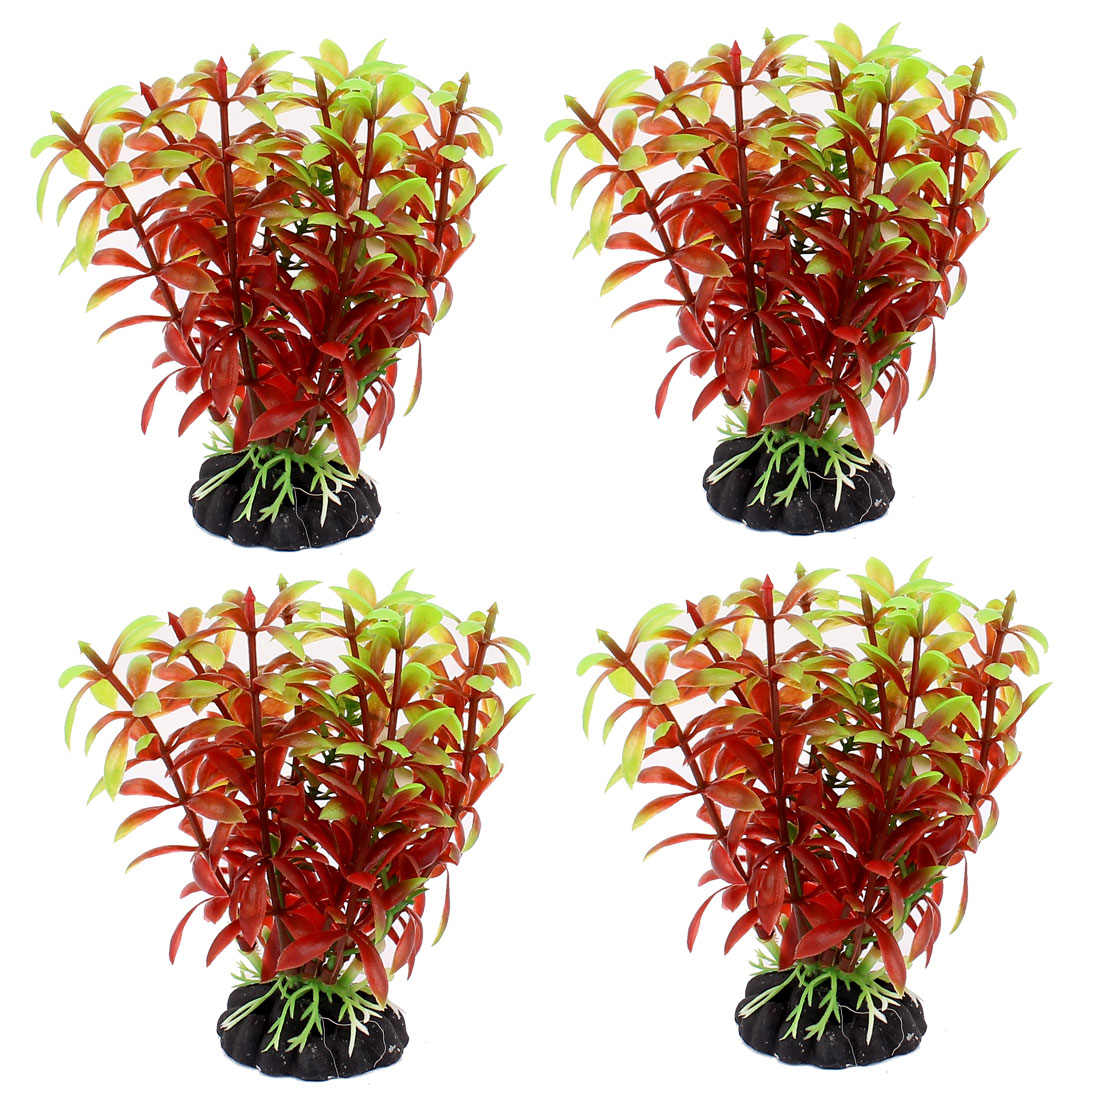 Plastic Underwater Aquatic Plant Fish Tank Aquarium Decoration 4PCS